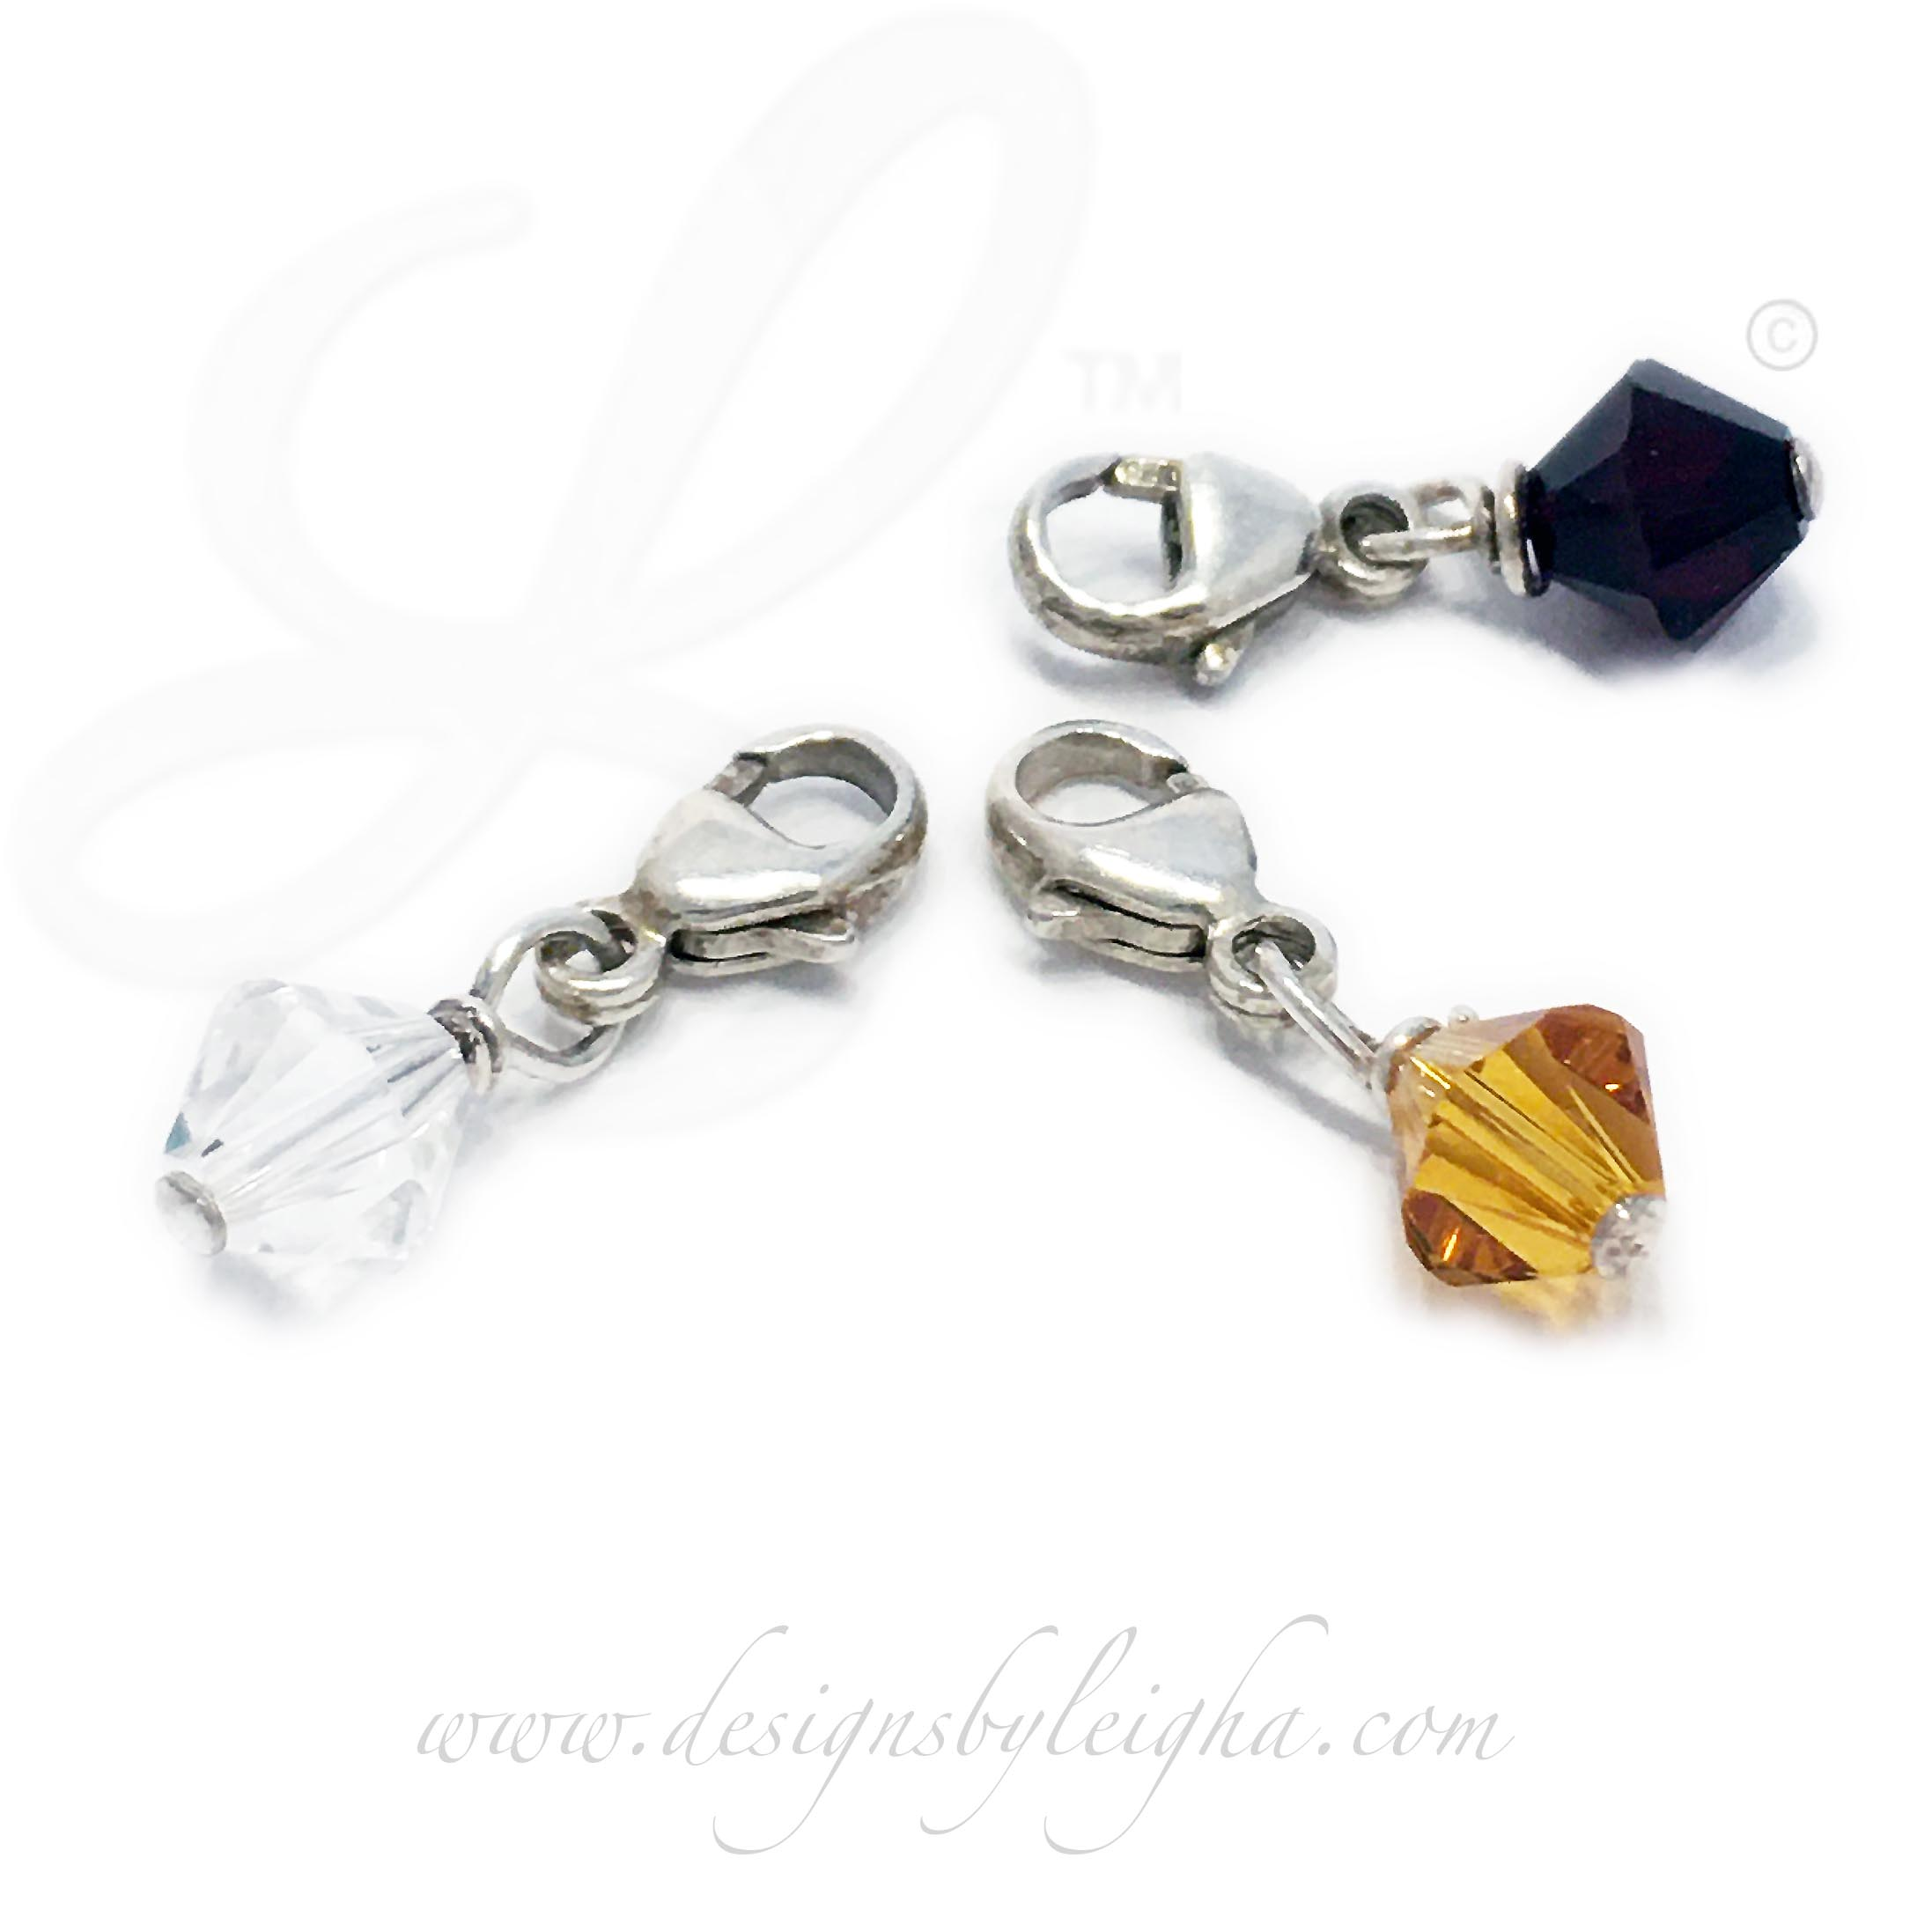 Simple Birthstone Charms with a Lobster Claw Clasp for easy attachment to an existing bracelet or existing necklace.